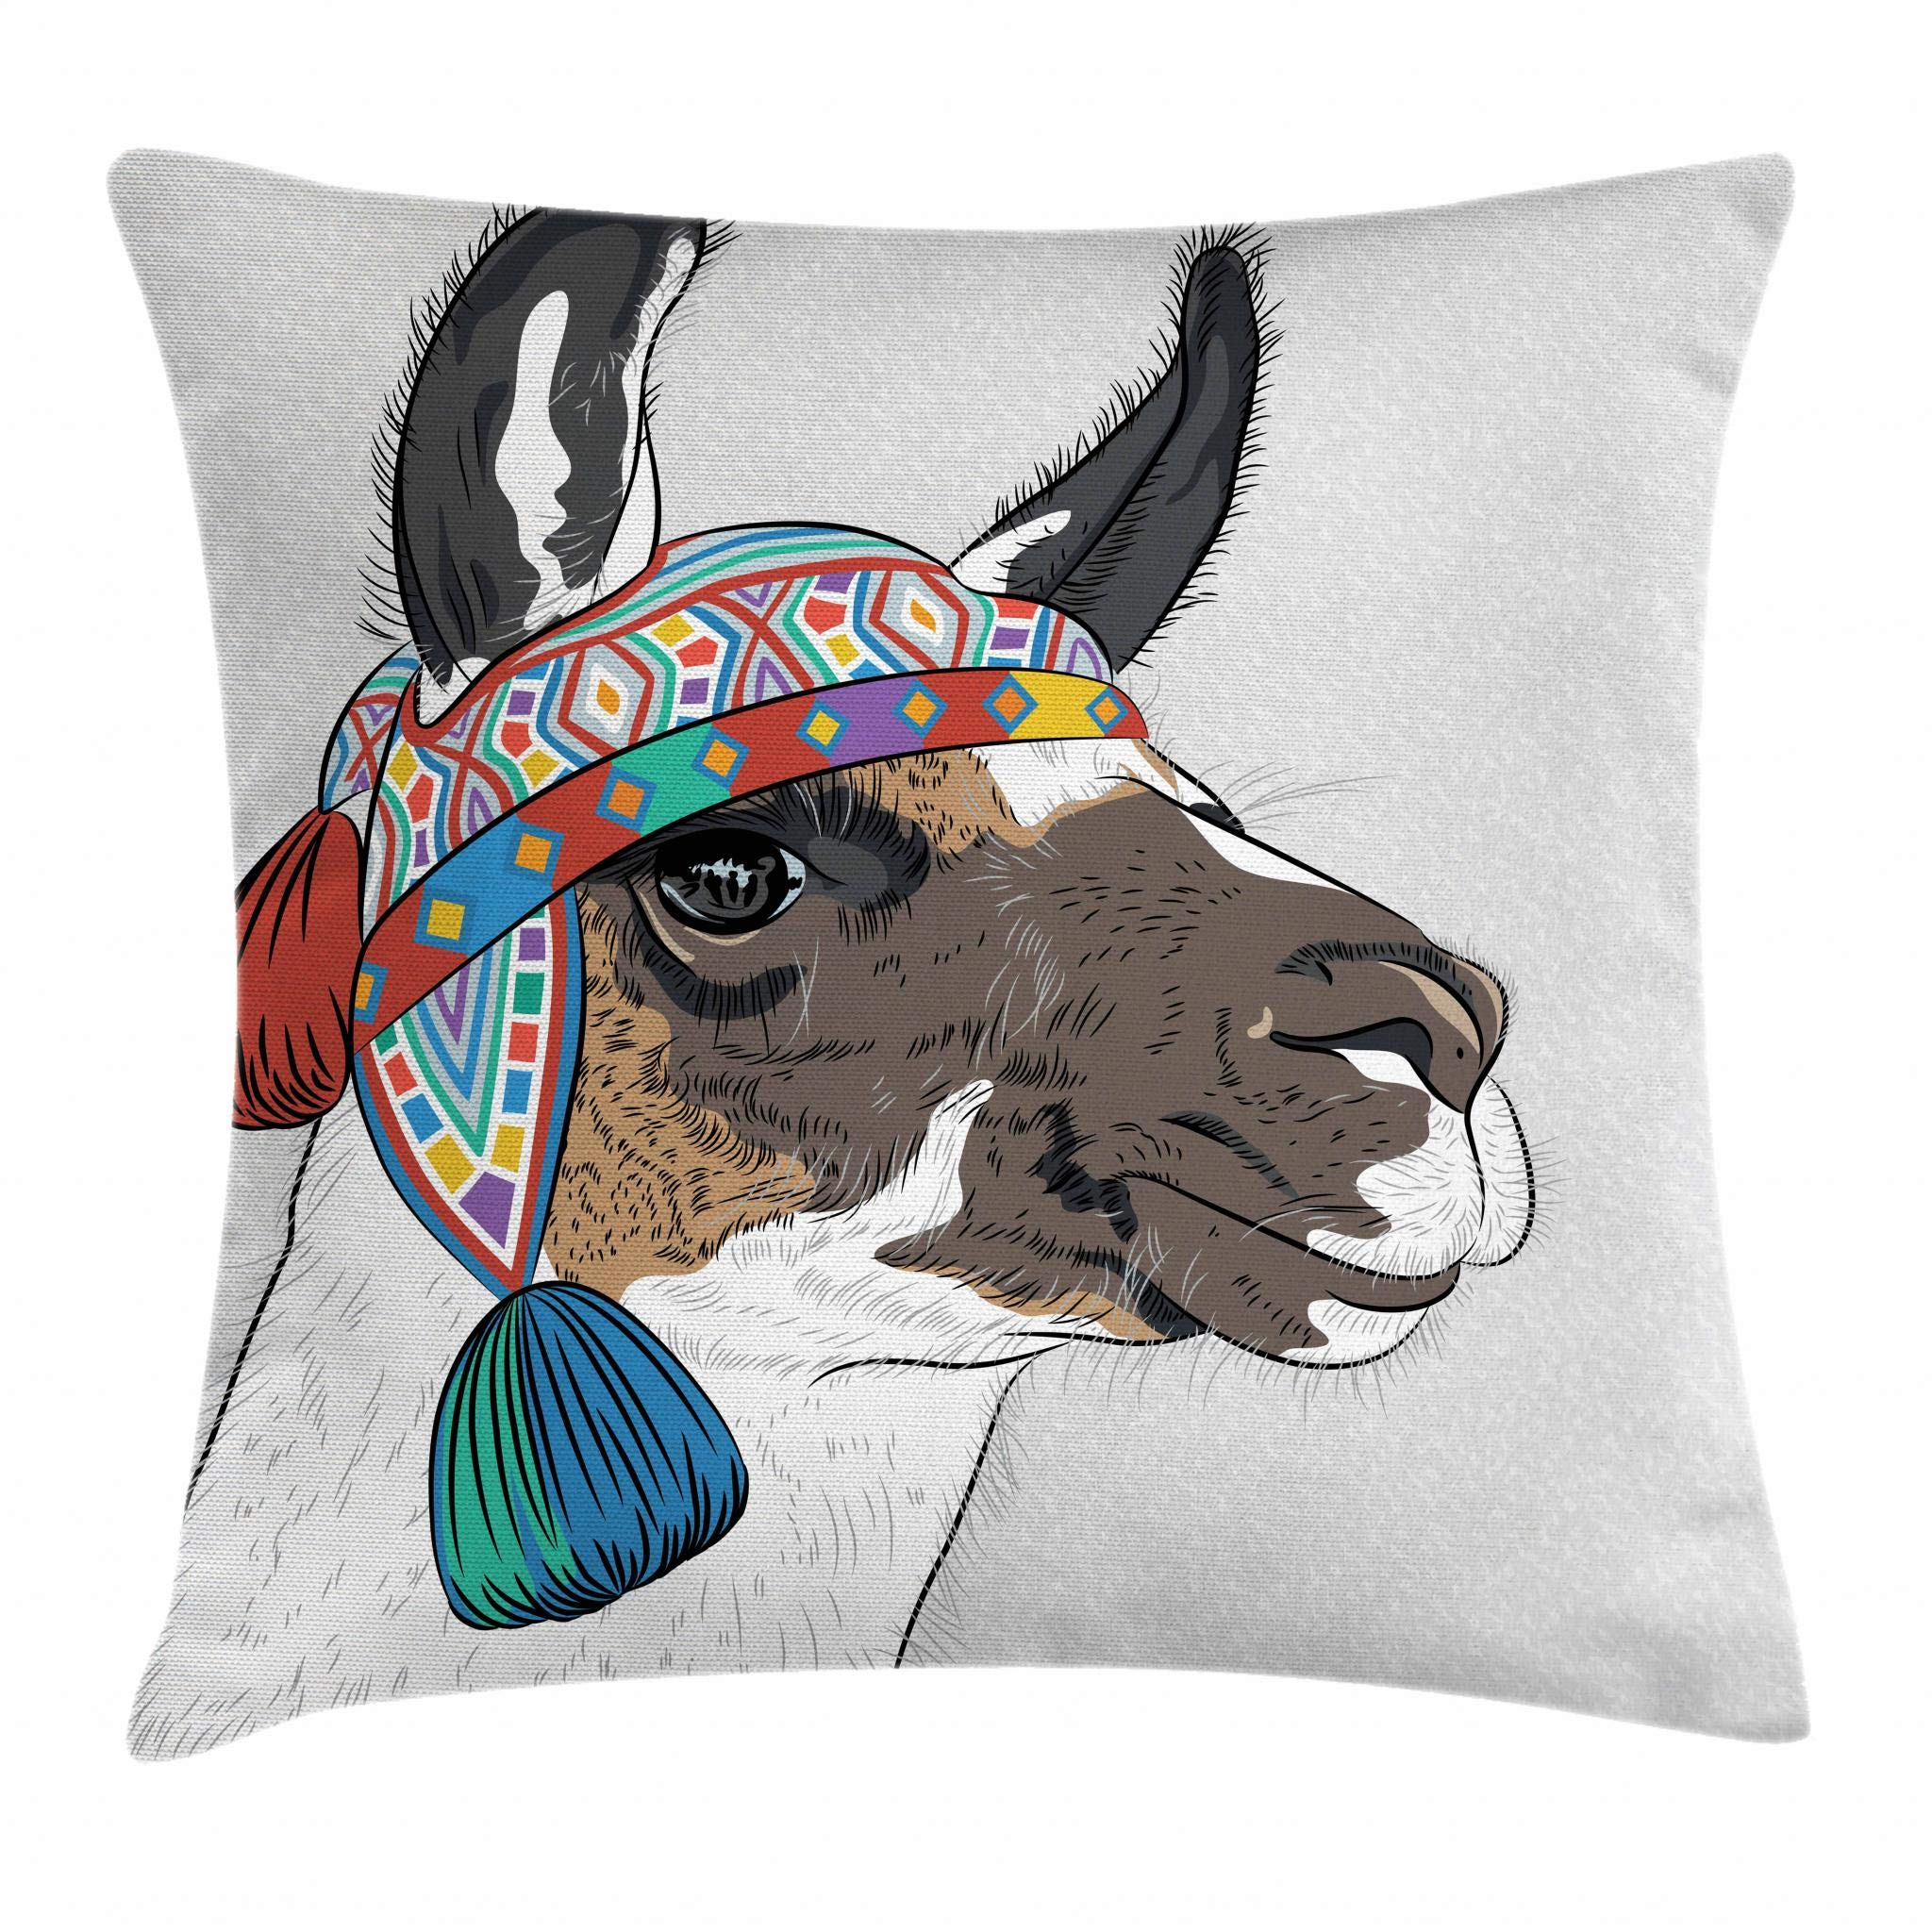 Ambesonne Llama Throw Pillow Cushion Cover, Alpaca with an Ethnic Colorful Hat Peruvian Sketch Style Animal Abstract Pattern, Decorative Square Accent Pillow Case, 16 X 16 Inches, Multicolor